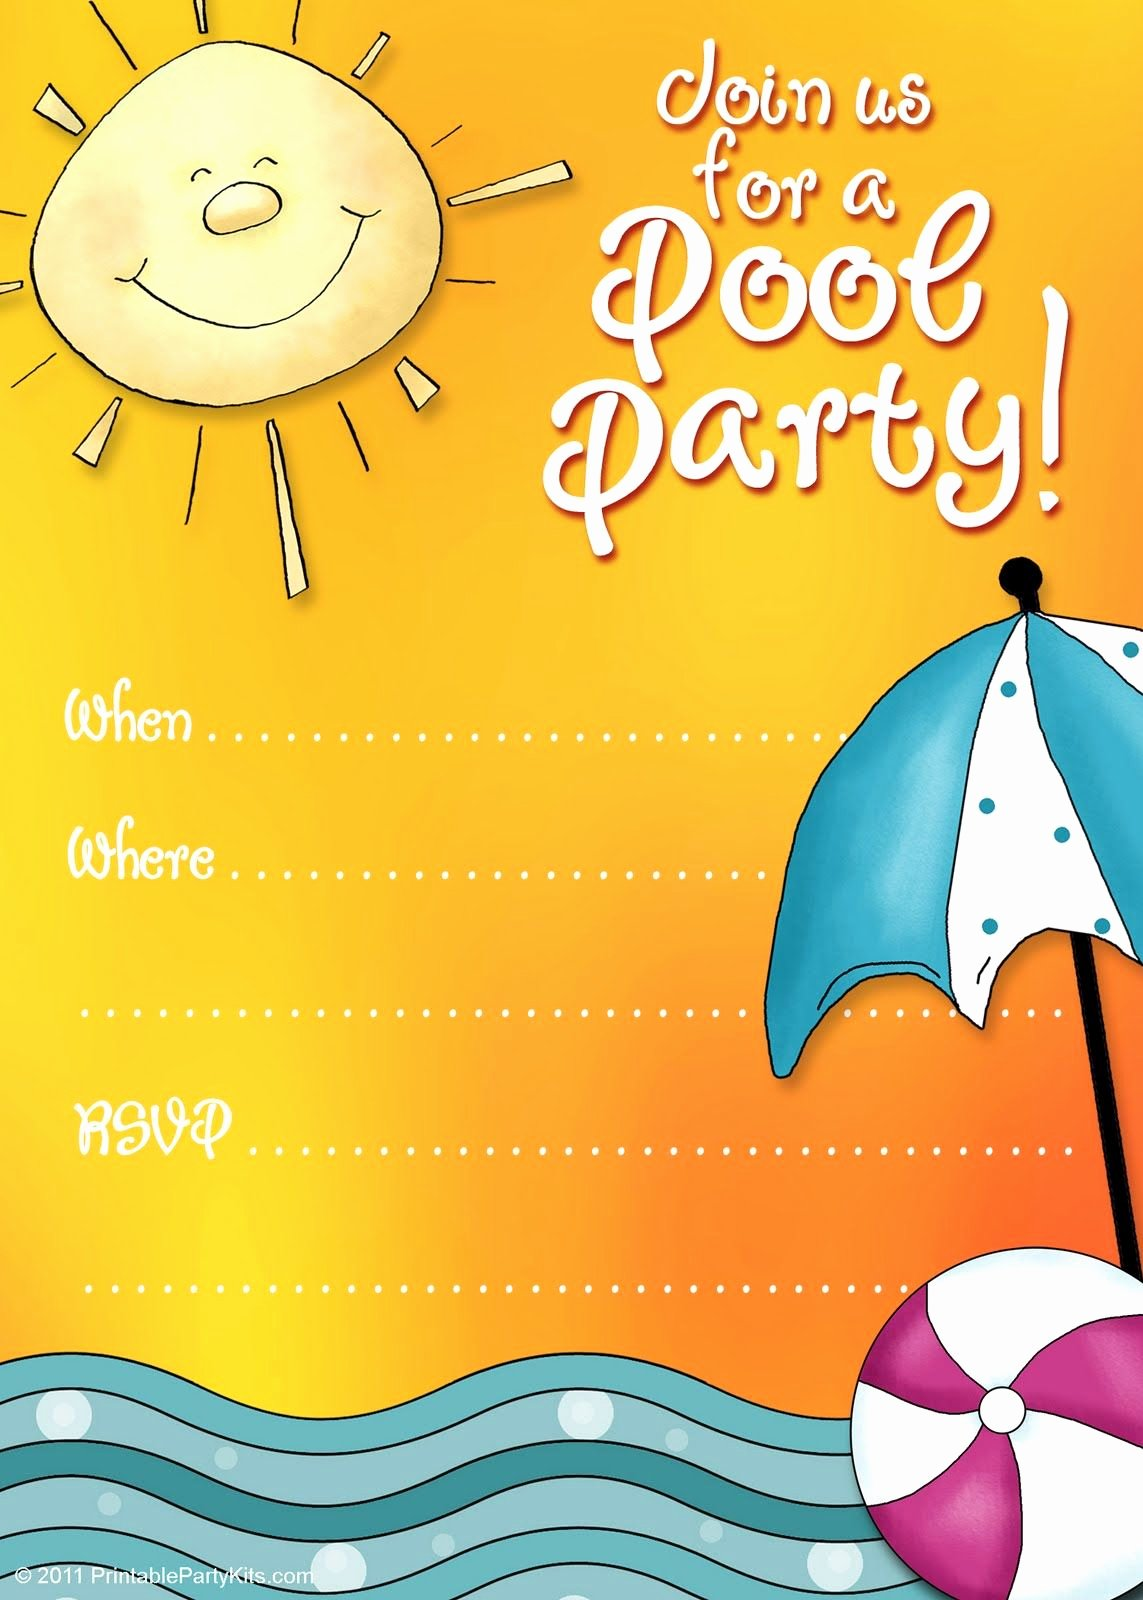 Summer Party Invitation Template Lovely Free Printable Party Invitations Summer Pool Party